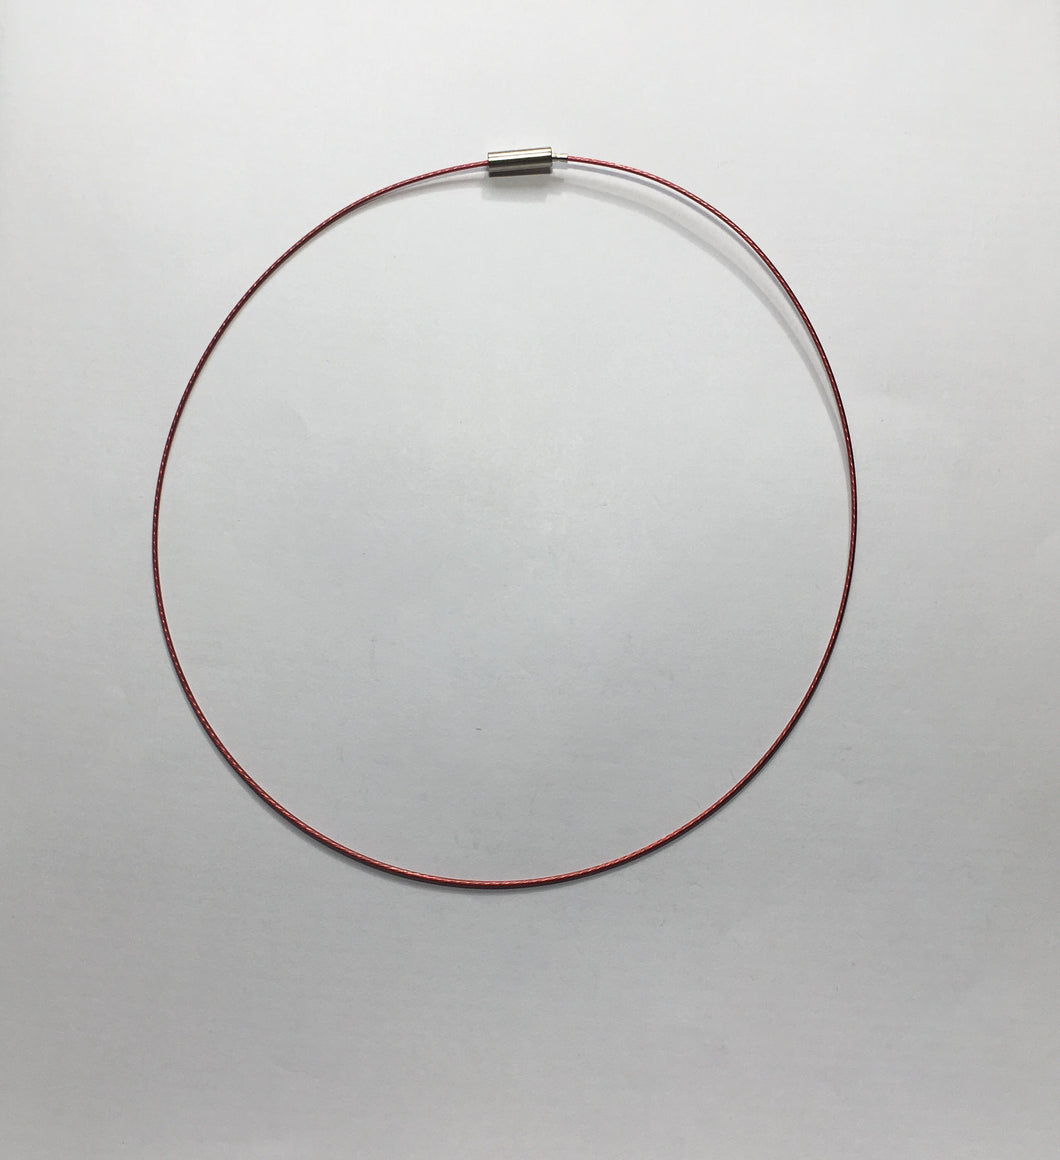 Red Nylon-Coated Twisted Wire Choker with Screw Closure, 16-Inch